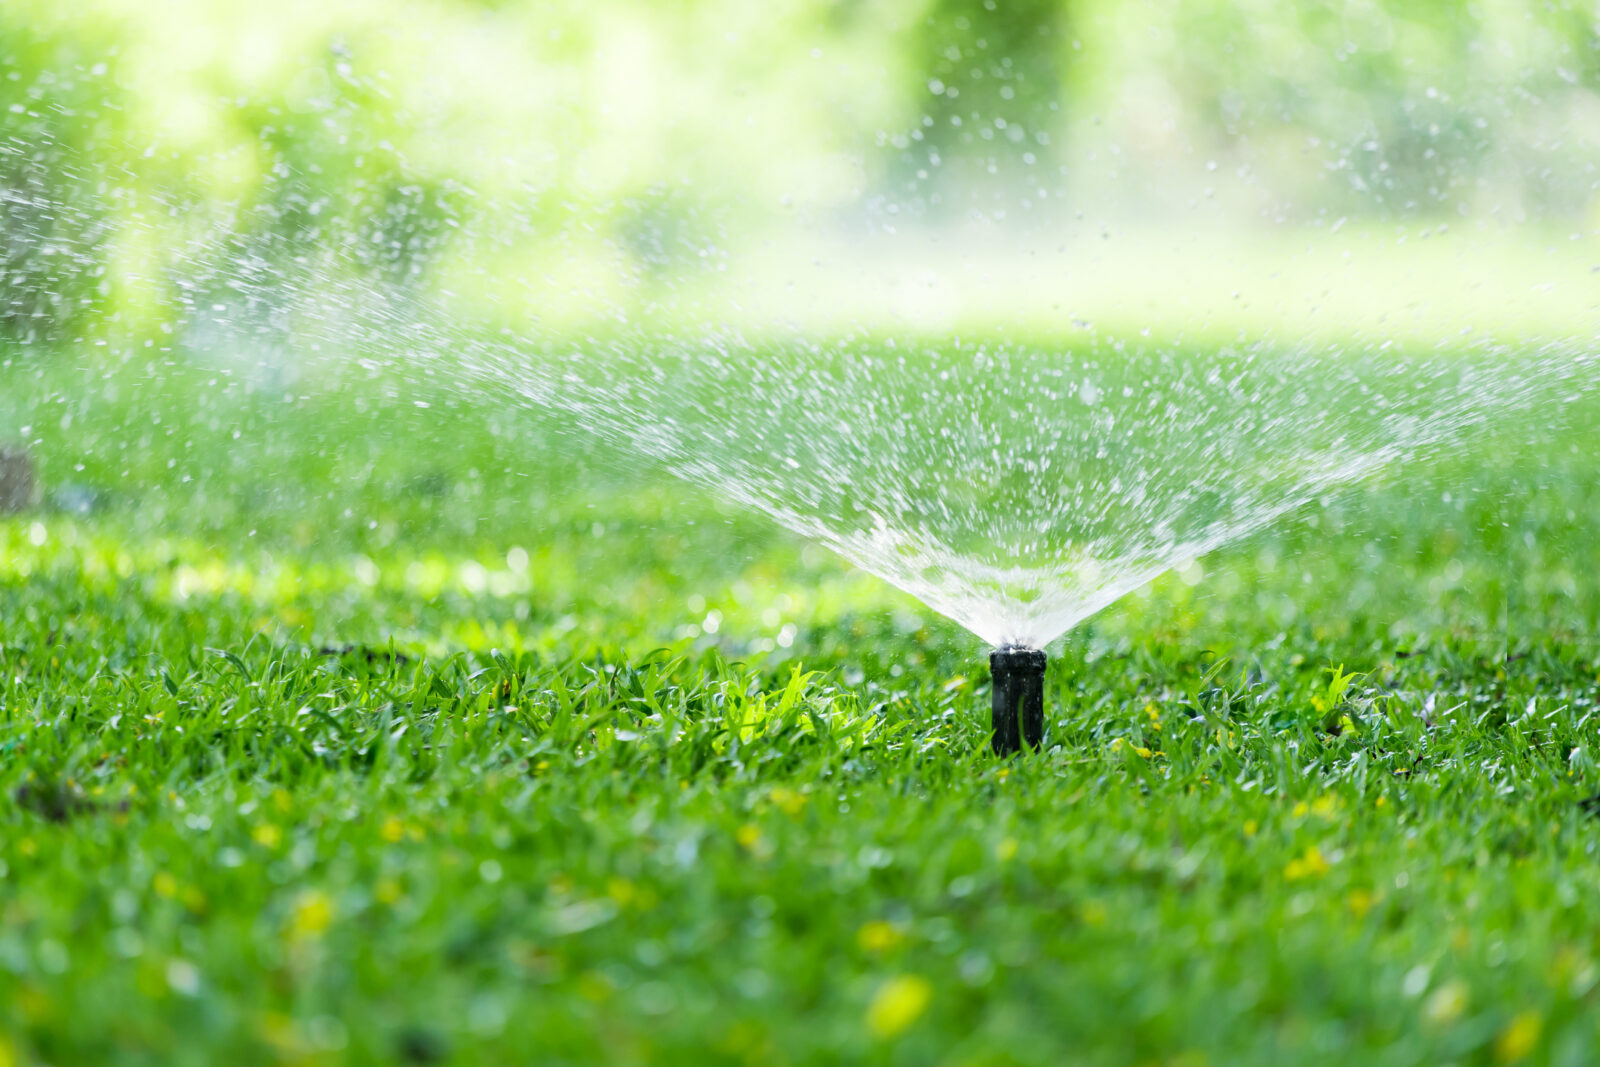 An image of a lawn sprinkler to illustrate a post on smart irrigation for LCA.